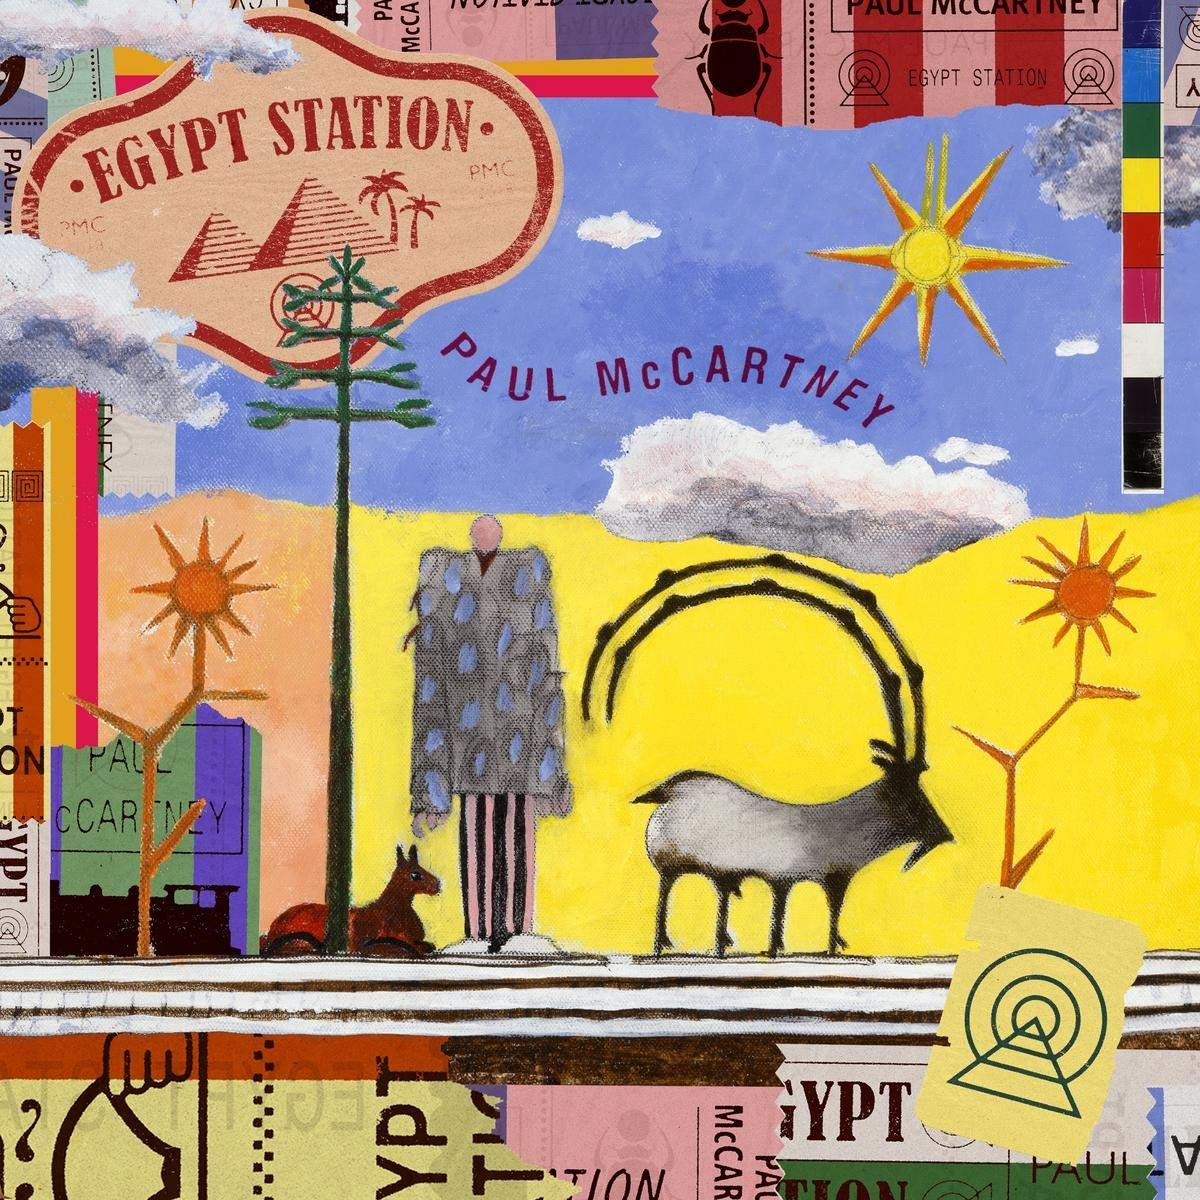 Paul McCartney – Egypt Station - Radio Cantilo